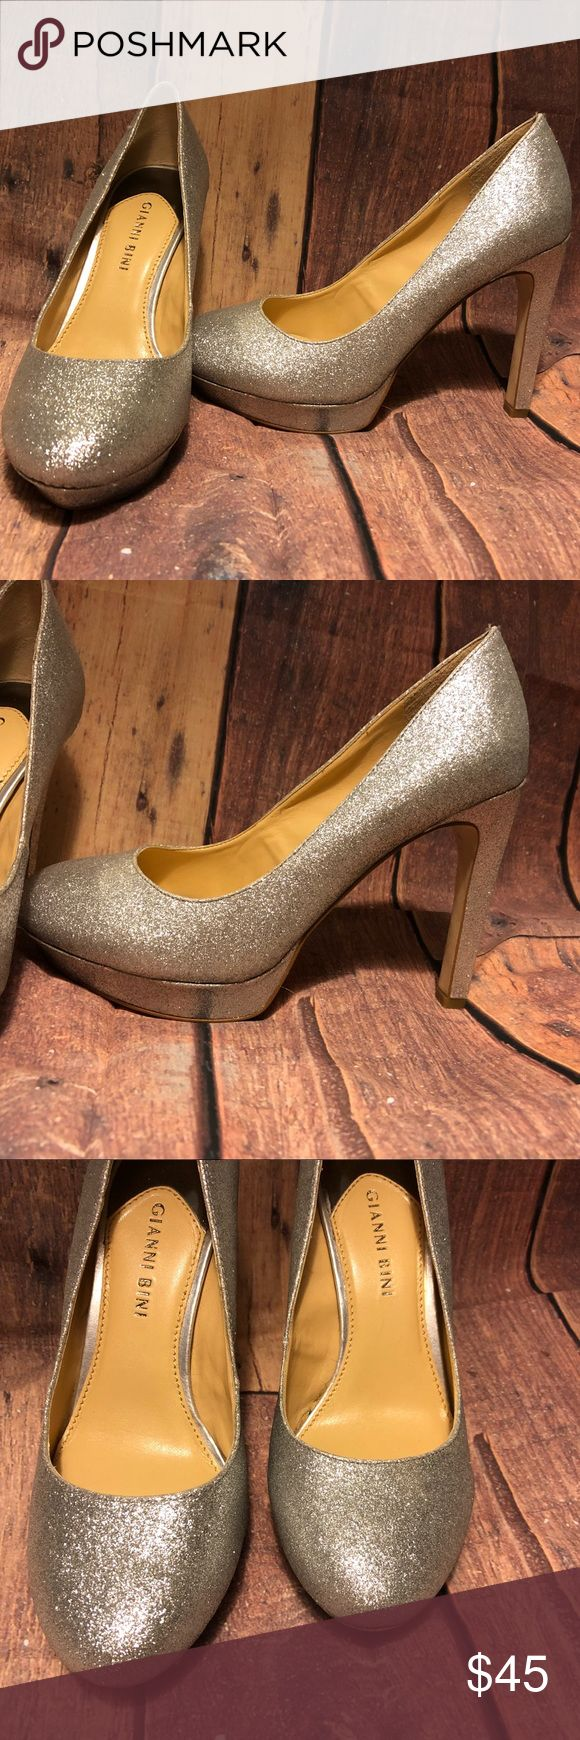 Gianni Bini Heels Shoes Silver Bling 7 Glitter Gianni Bini  Shoes / Heels Size 7  Sliver Sparkly Glitter (manufactured this way)  Would be super pretty for Prom  In excellent condition  Worn only twice  Originally $115  No weird odors  Smoke free pet free home  Shoes are clean inside and out Gianni Bini Shoes Heels